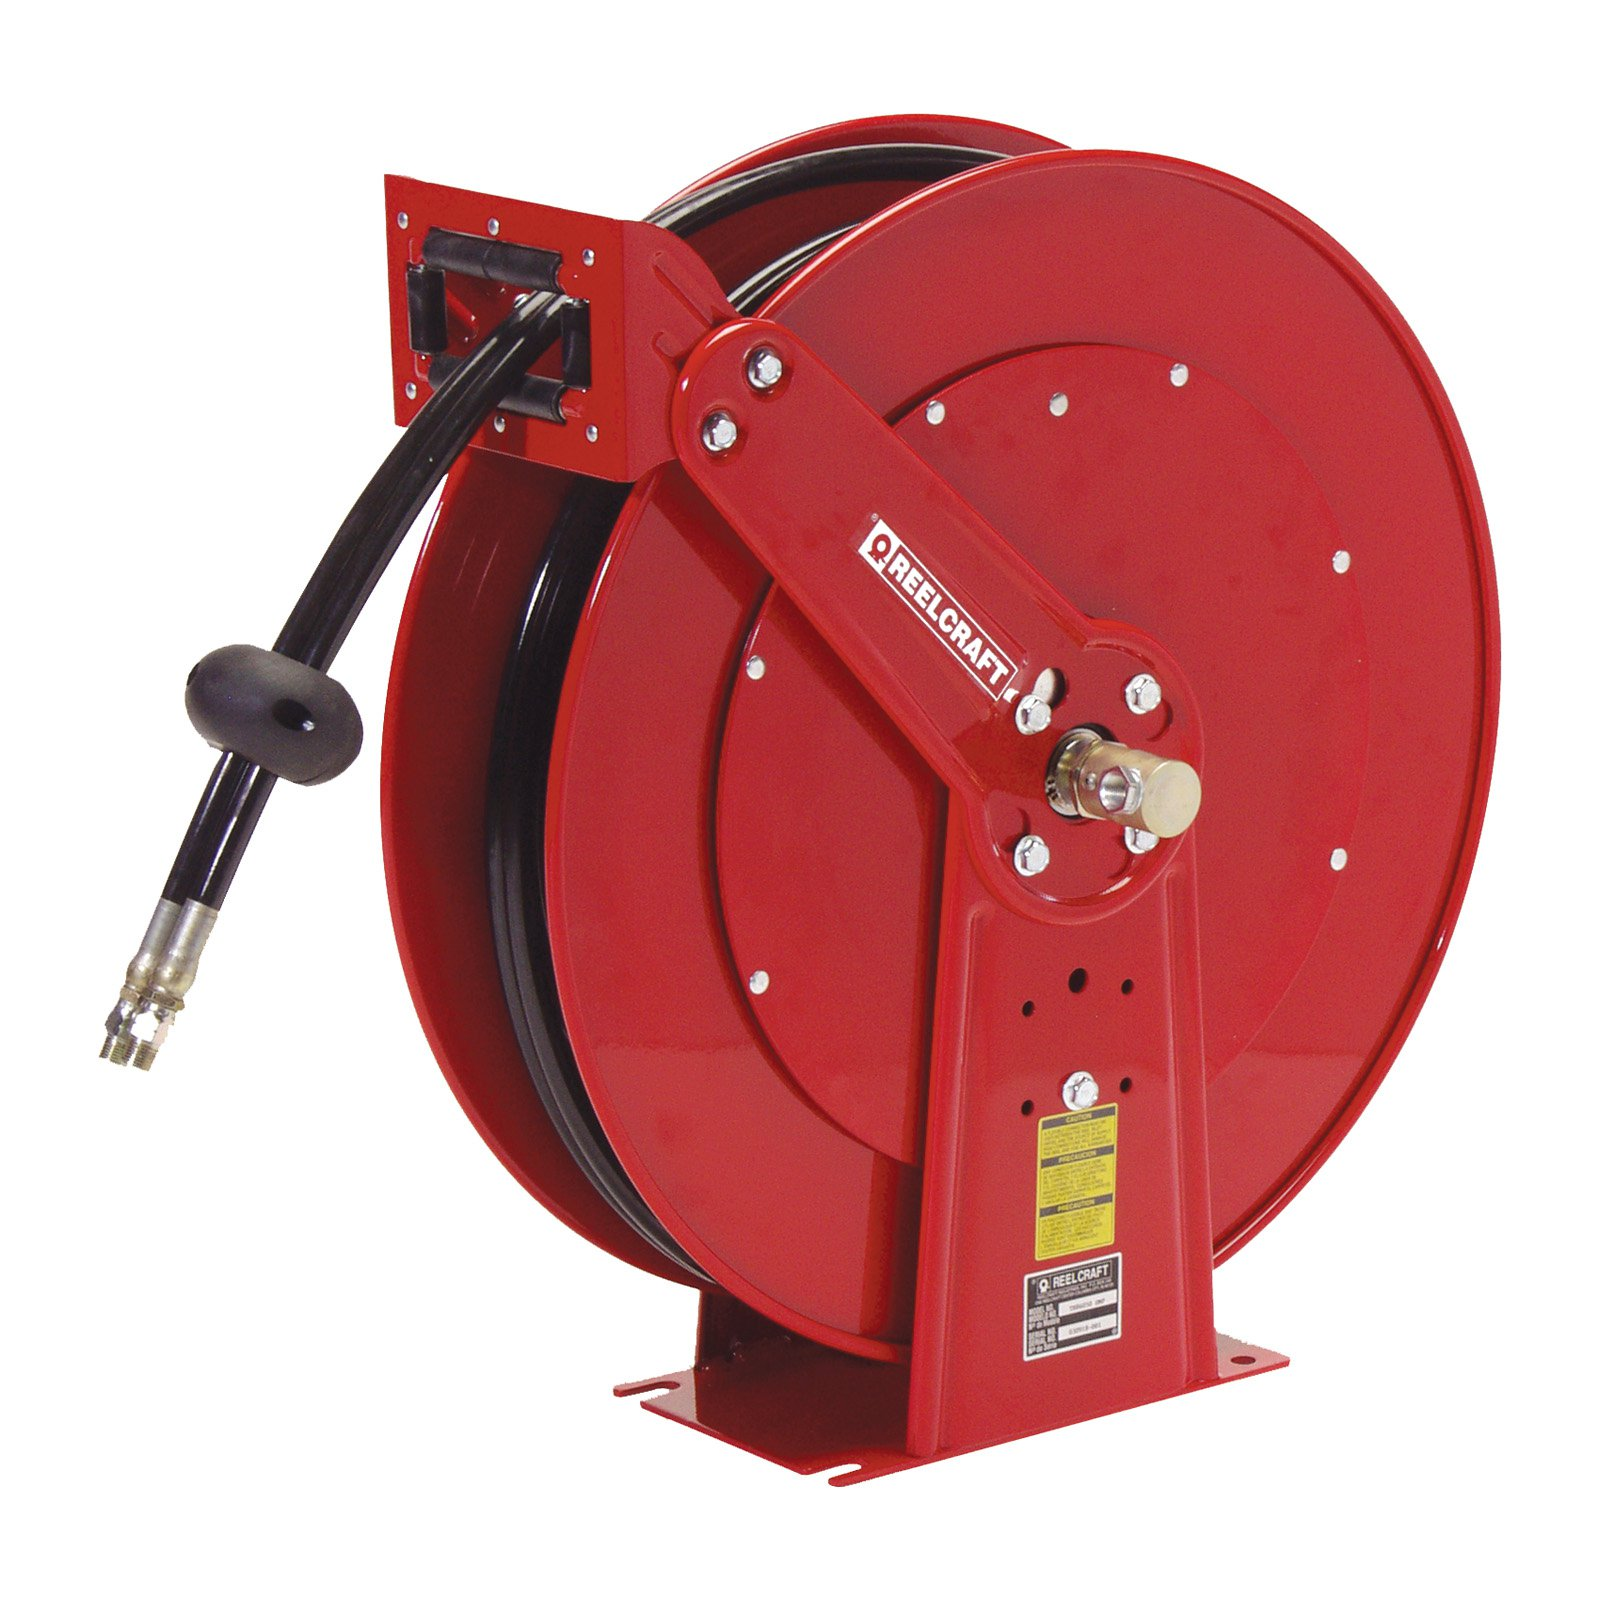 Reelcraft Twin Line Hydraulic 1 2 in. Hose Reel 50 ft. by Reelcraft